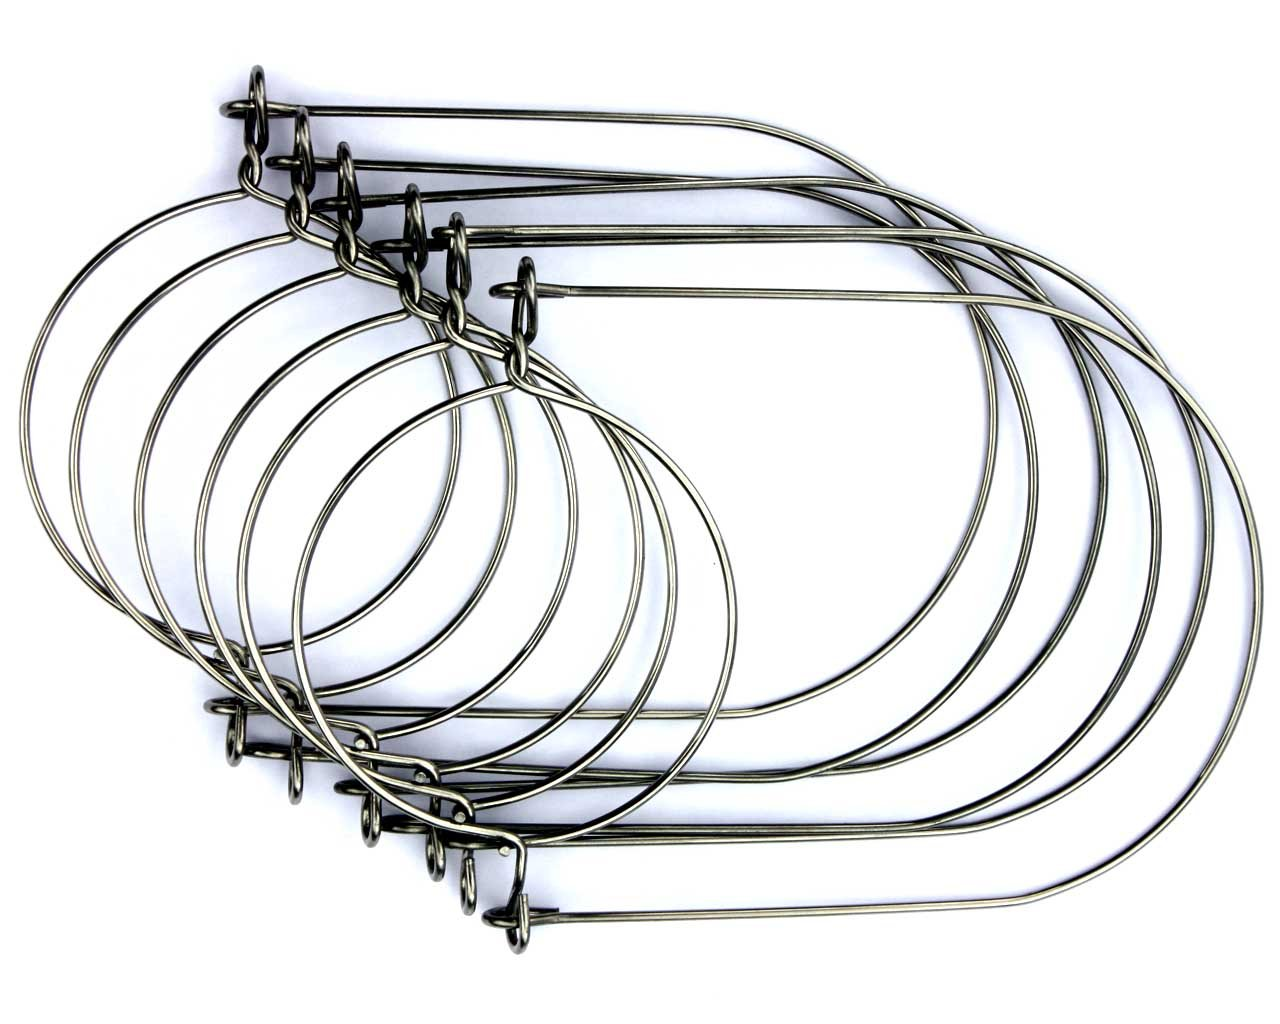 6 Stainless Steel Wire Handles for Mason, Ball, Canning Jars (Regular Mouth)